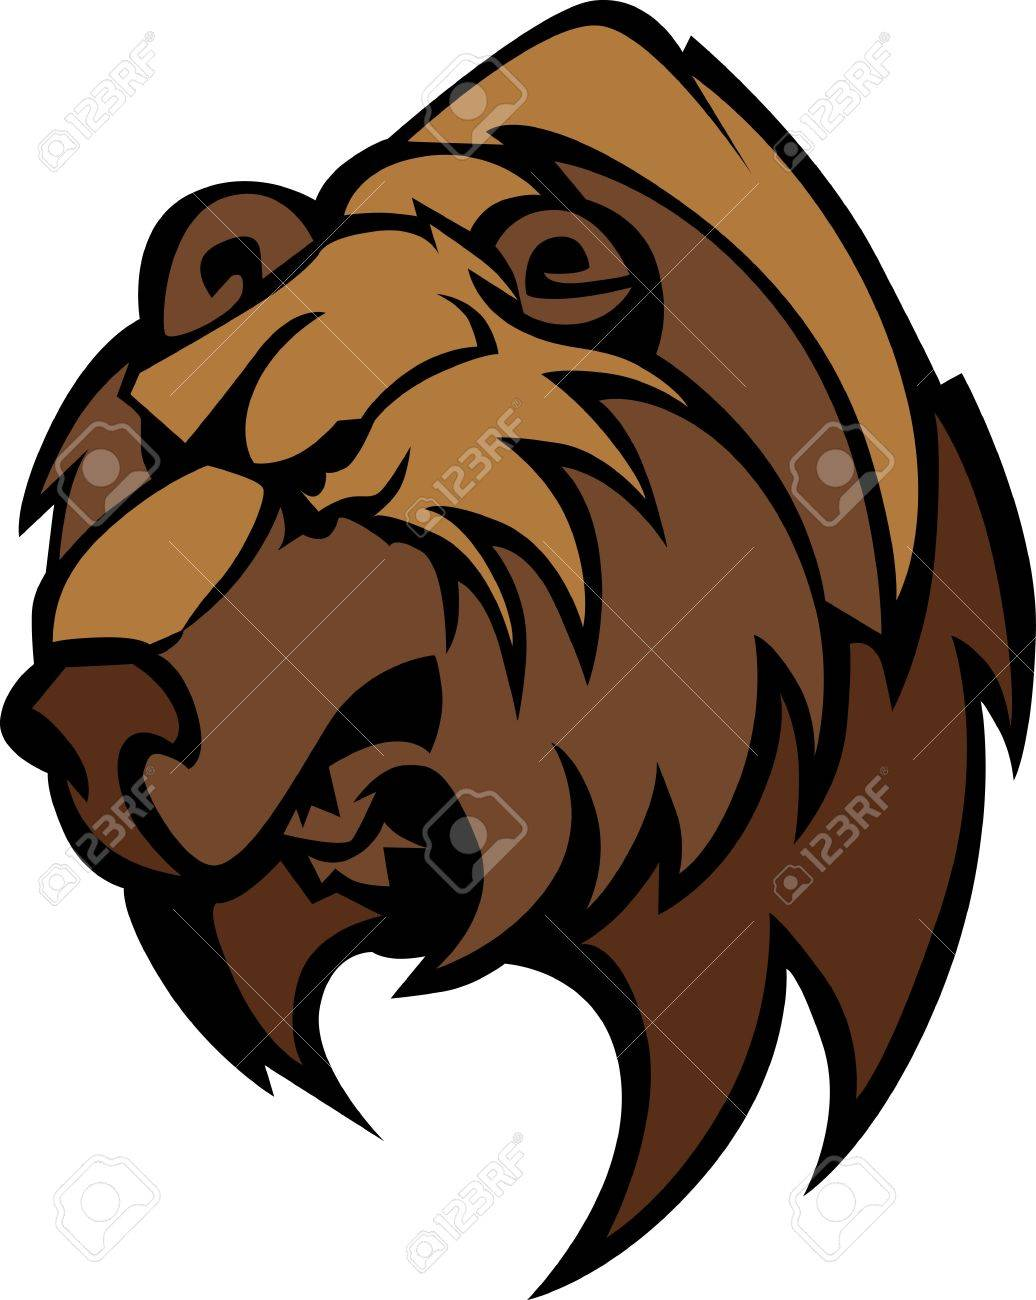 Cartoon Vector Mascot Image of a Black Bear Head Stock Vector - 12805196